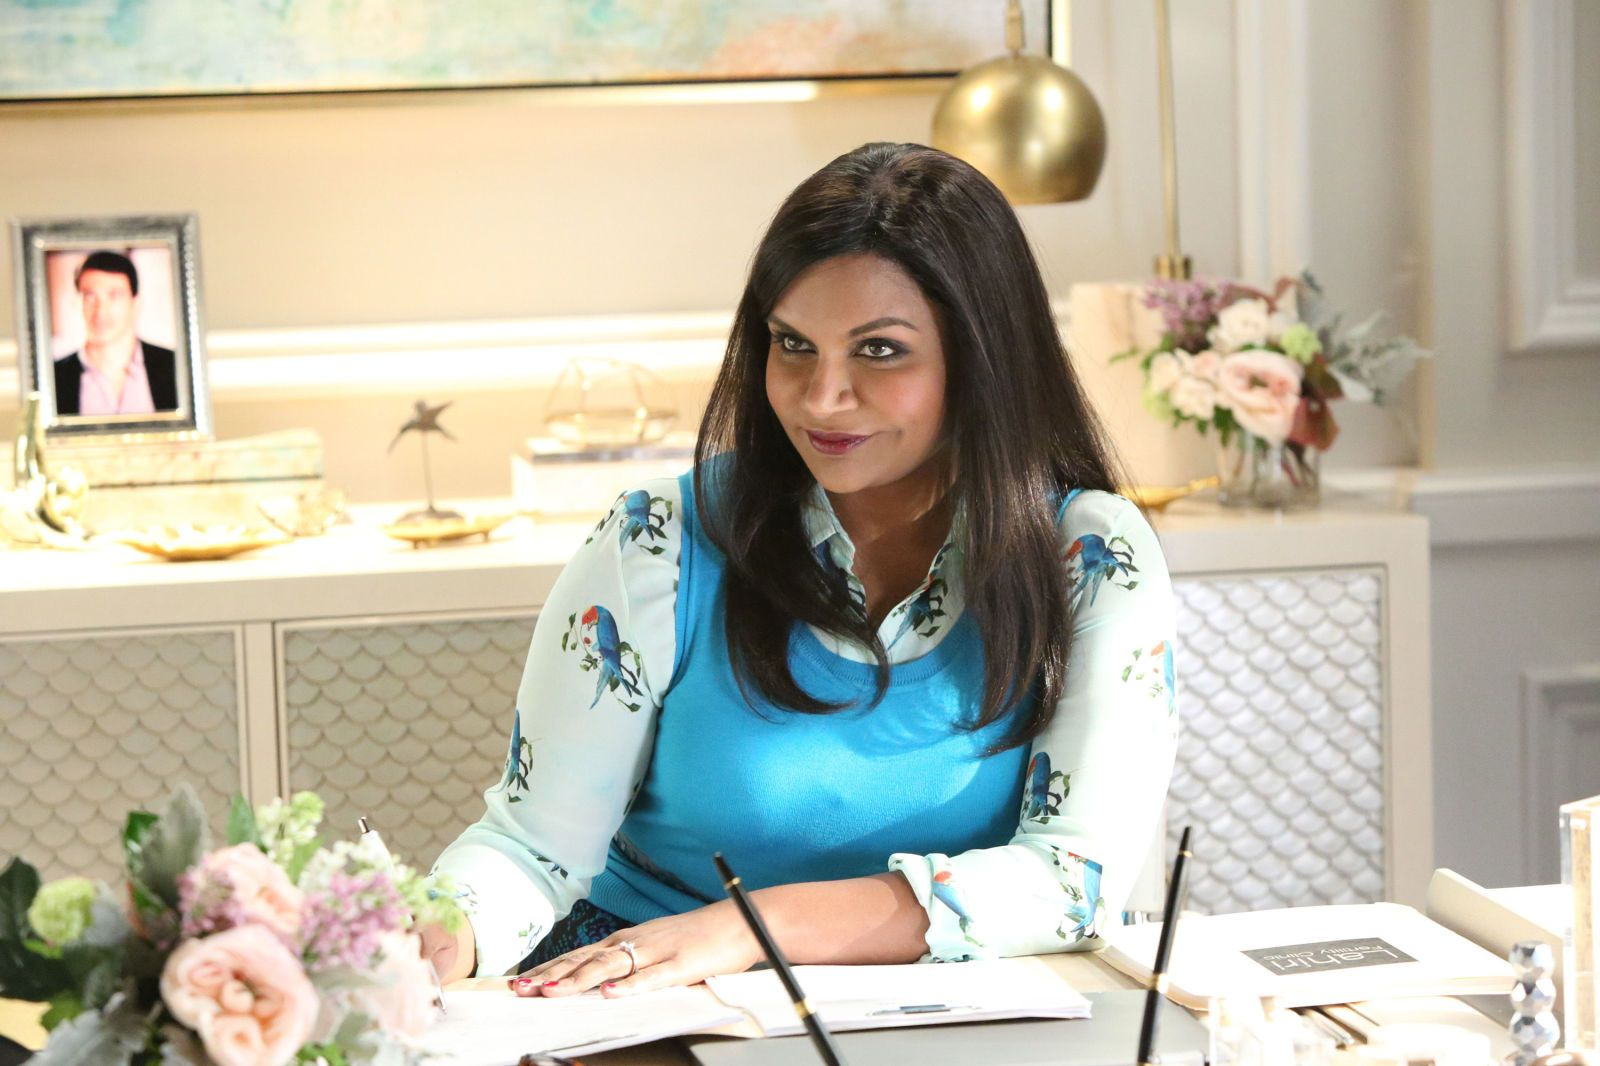 Mindy Kaling In Hollywood Women Have To Send Sorry I M Assertive Gifts The Mindy Project Mindy Kaling Fashion Tv